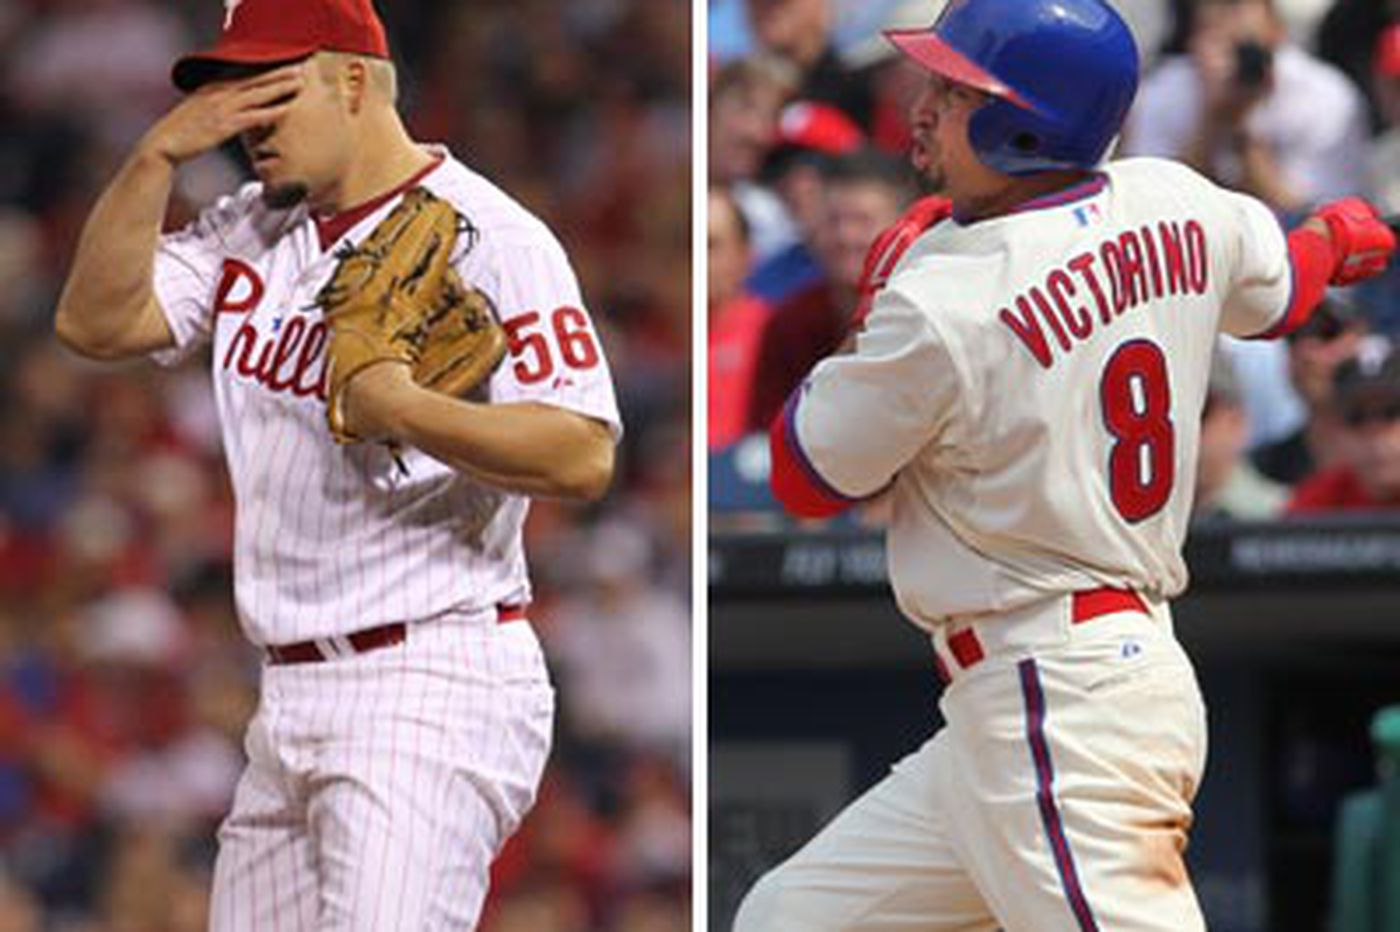 Victorino, Blanton appear to be headed for DL